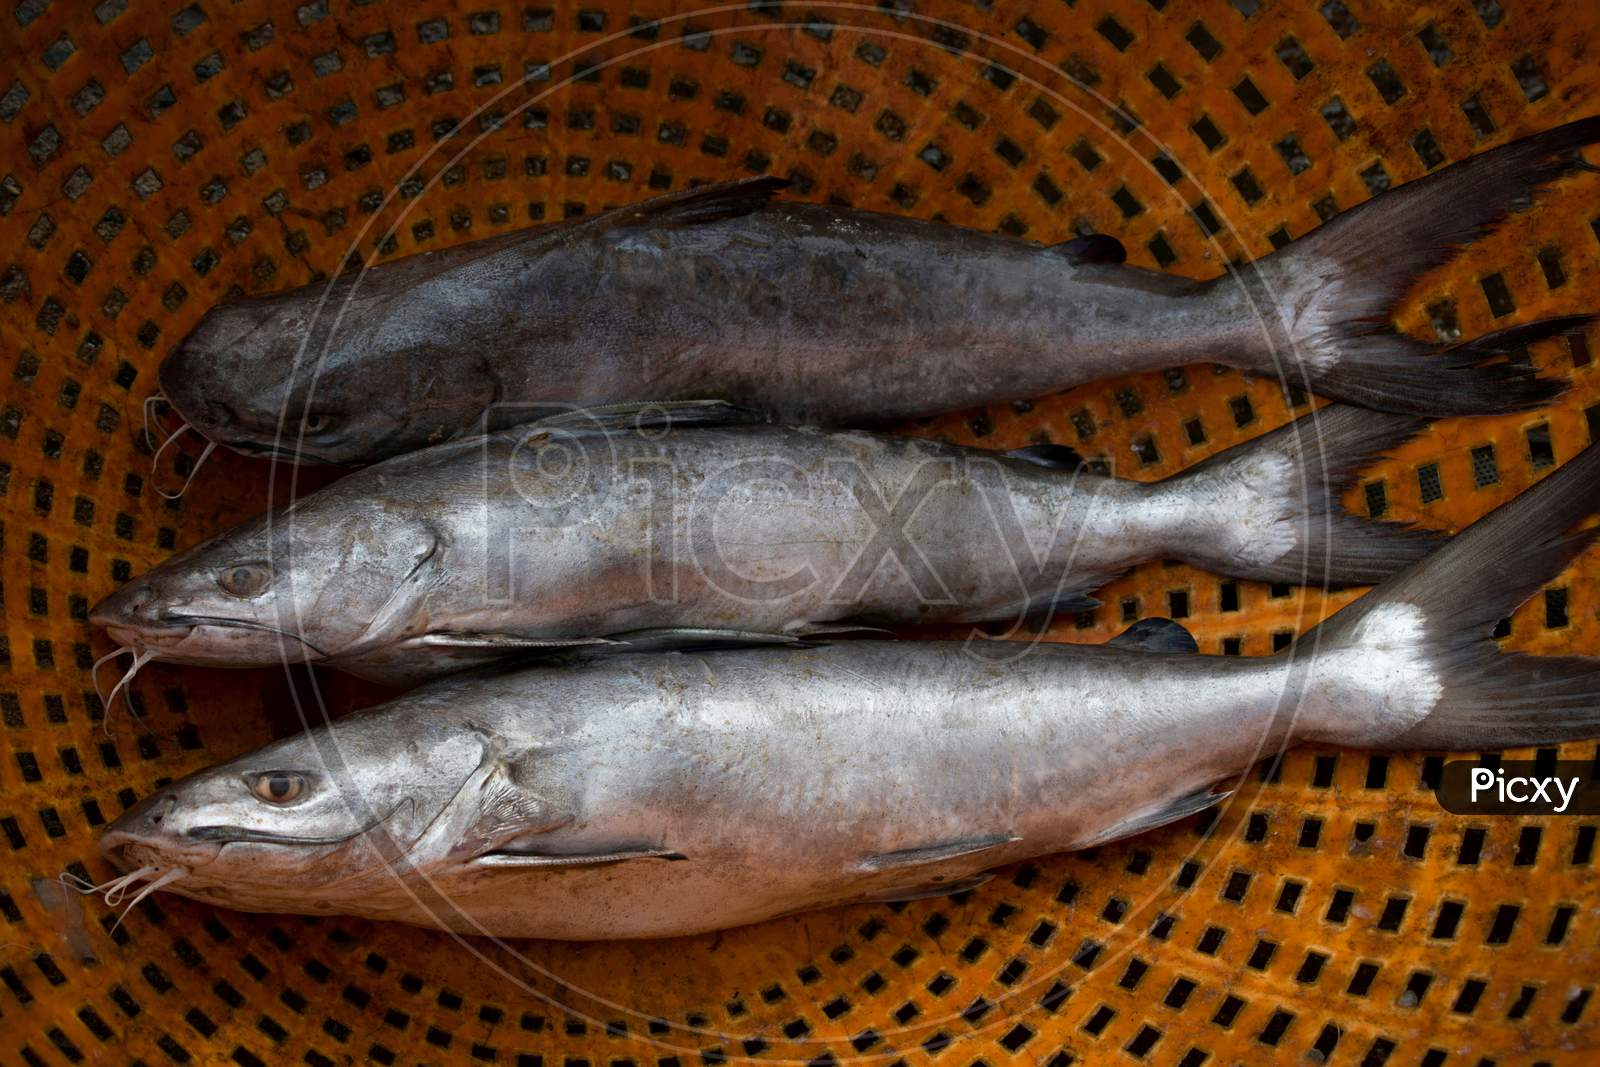 Group Of Silver Catfish For Sale In The Market.